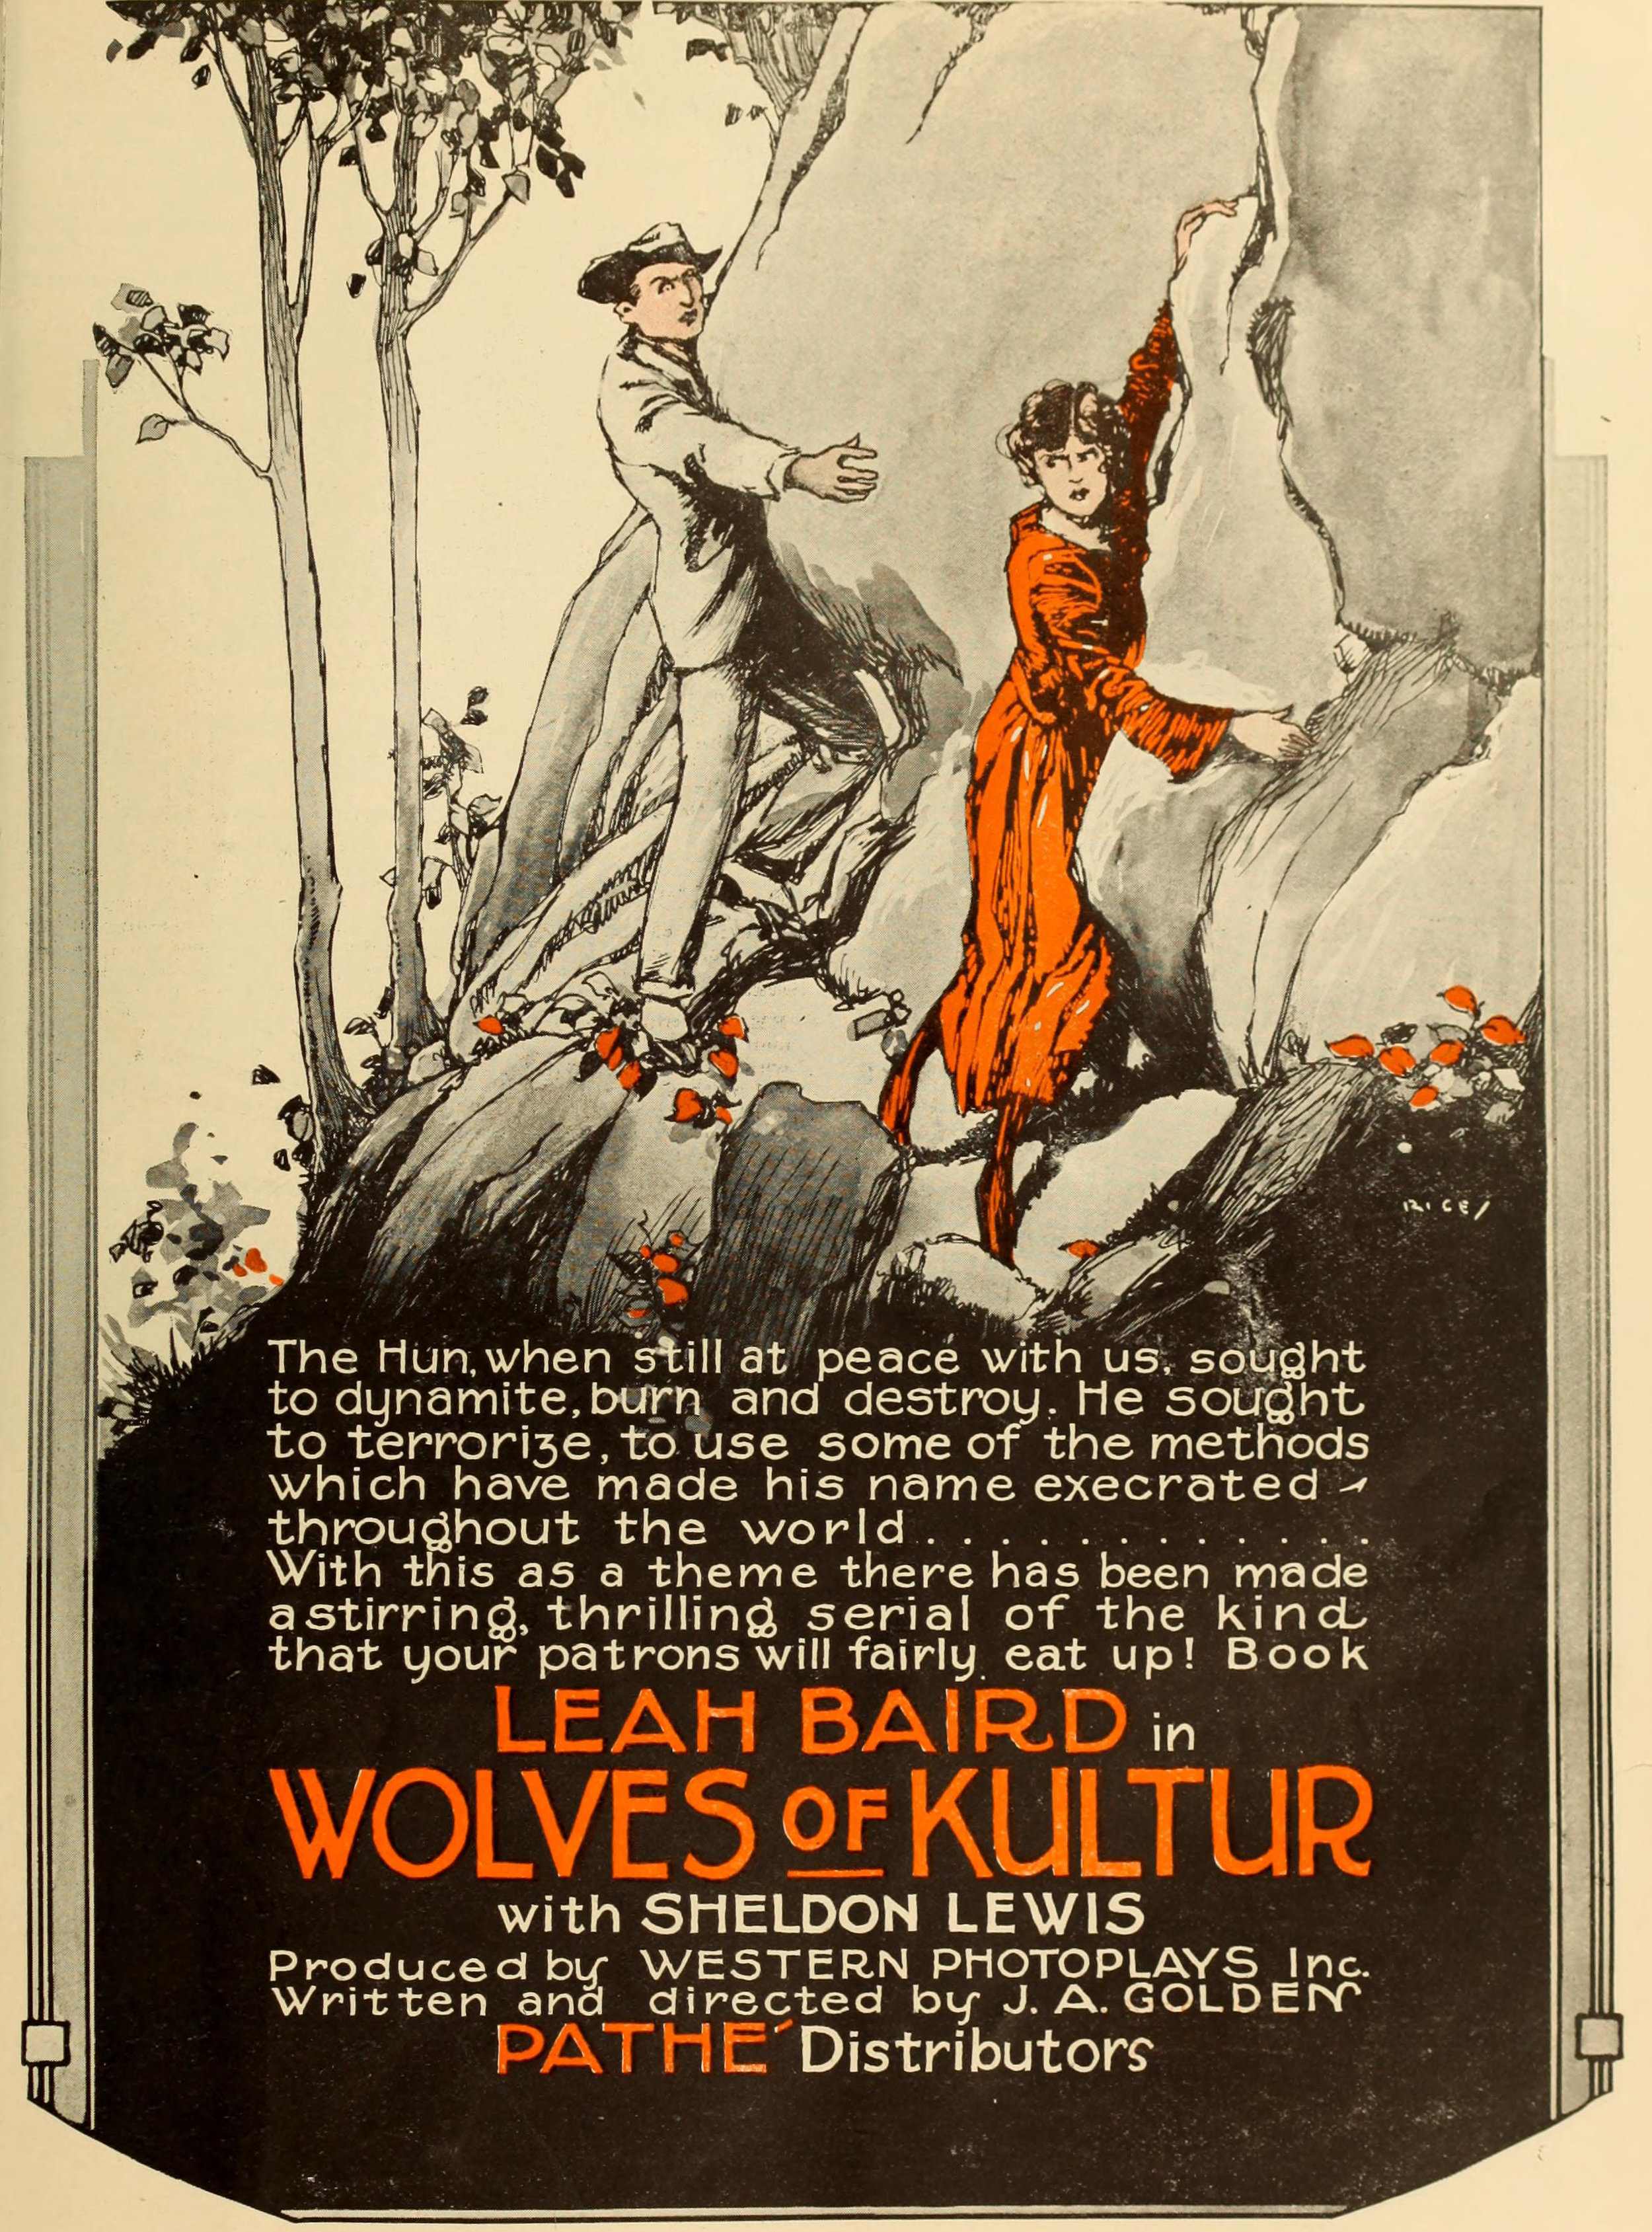 Fig 1. Advertising for  Wolves of Kultur  emphasized the film's use of the Palisades.